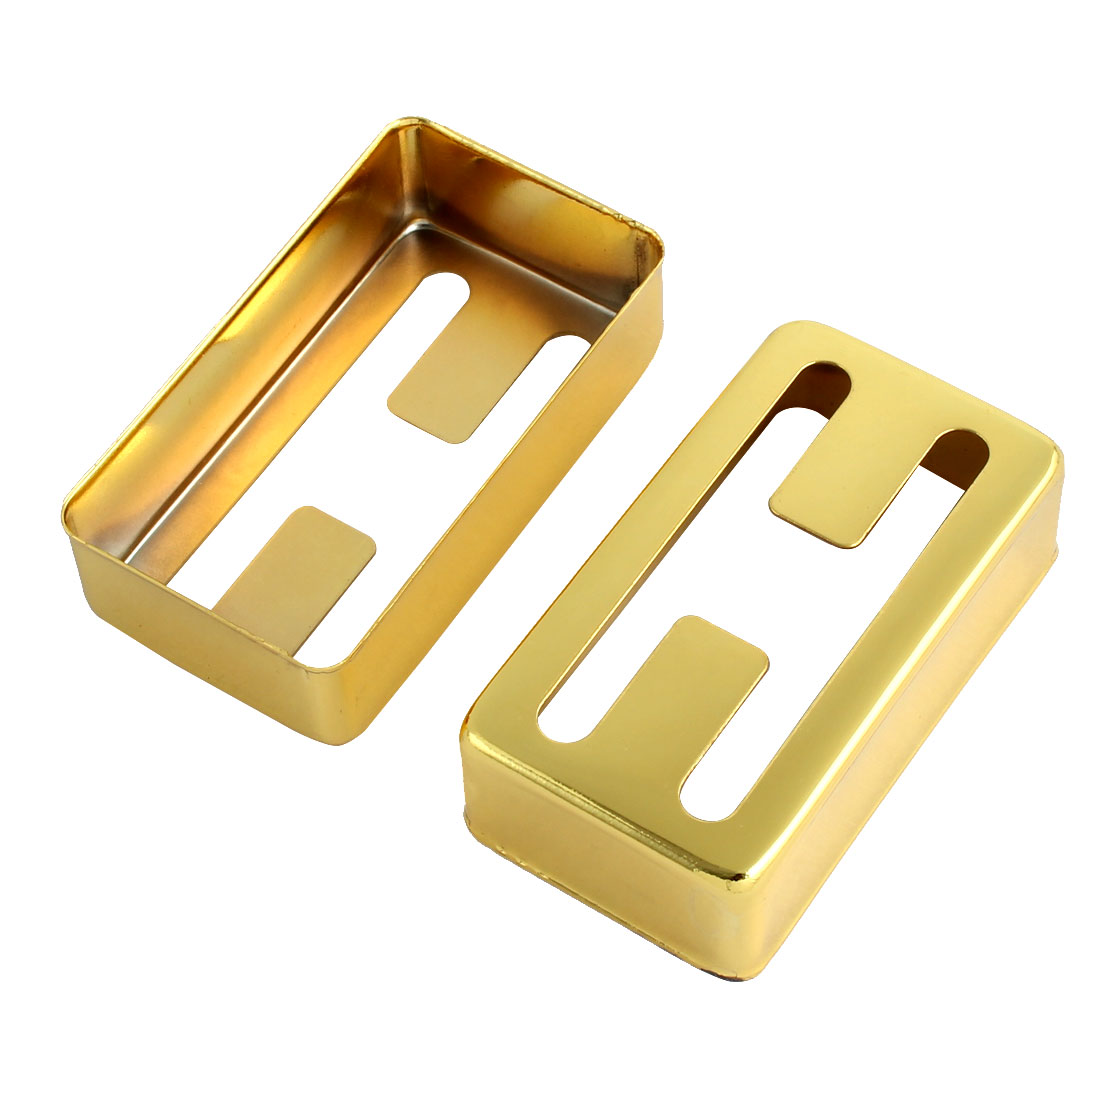 H Design Acoustic Humbucker Guitar Pickup Cover Gold Tone 7cm x 4cm x 2cm 2pcs